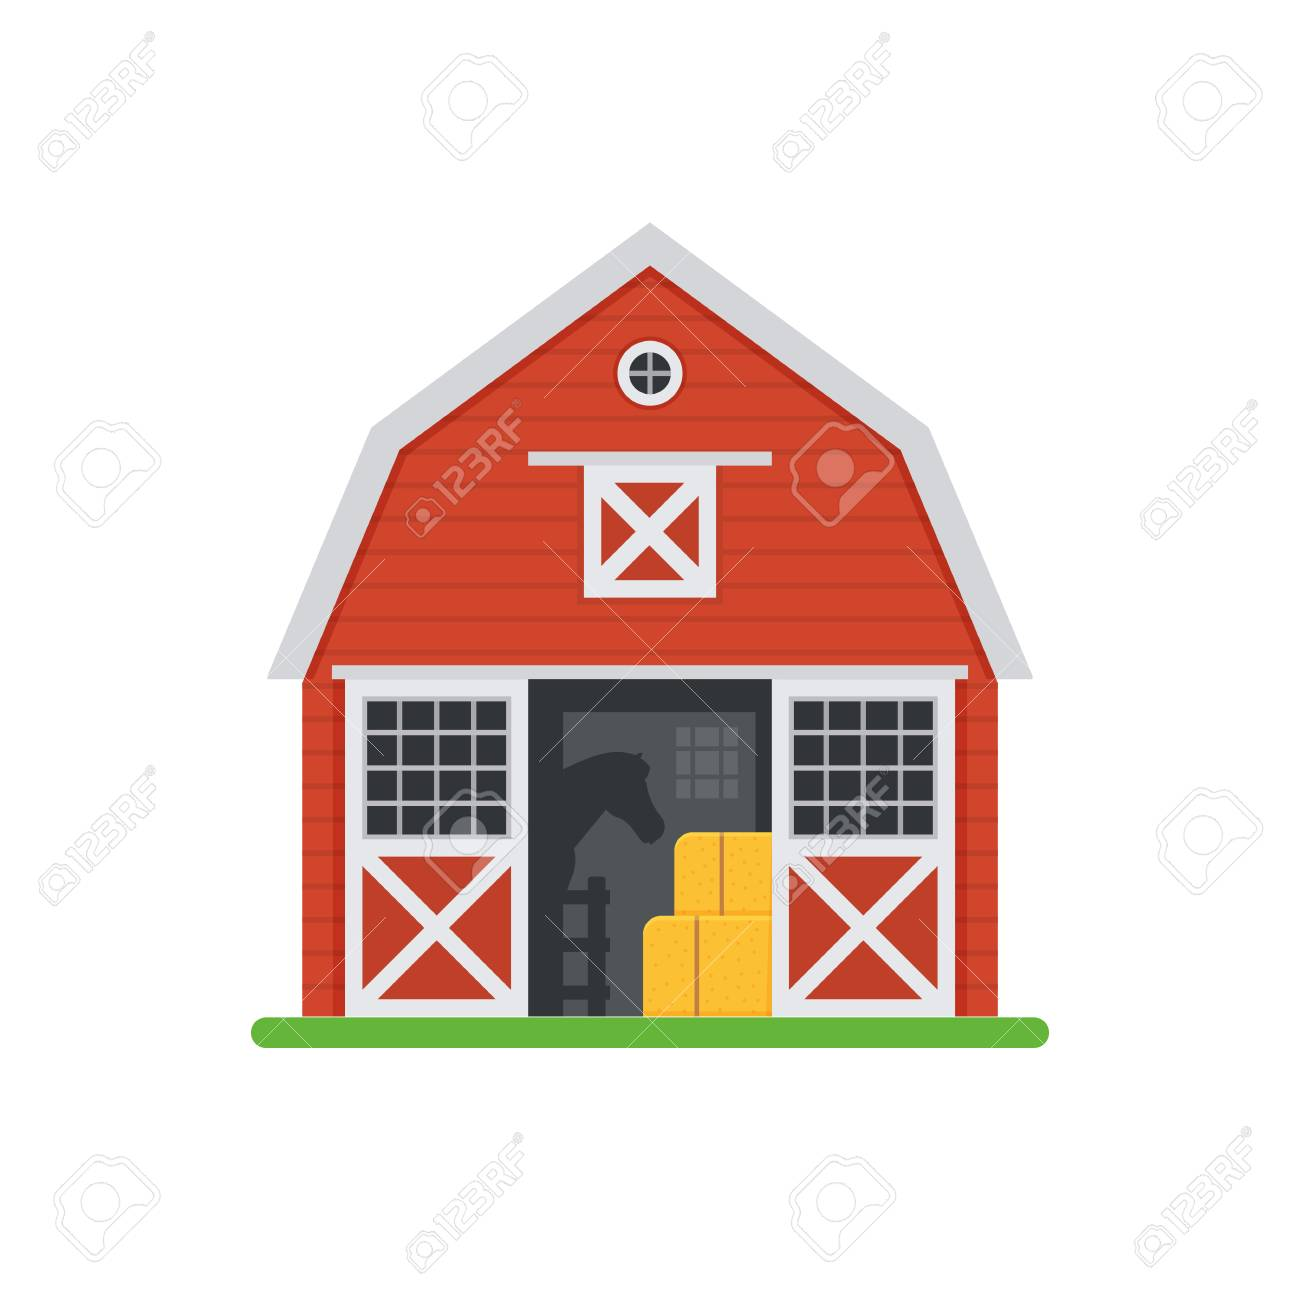 Red Horse Barn Vector Illustration Wooden Stables Building With Royalty Free Cliparts Vectors And Stock Illustration Image 75161116